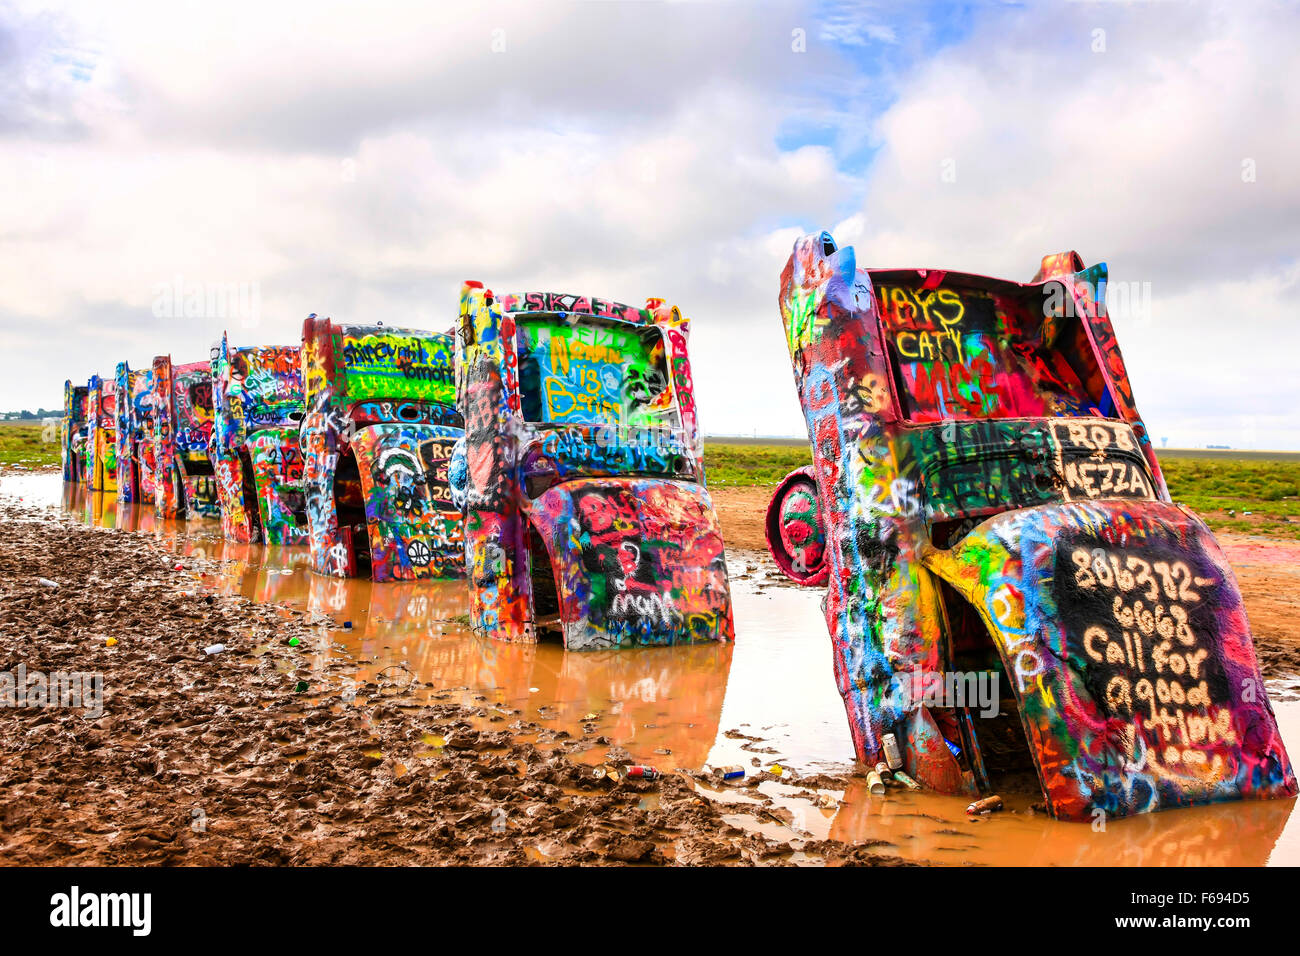 Cadillac Ranch public art sculpture in Amarillo, Texas. Created in